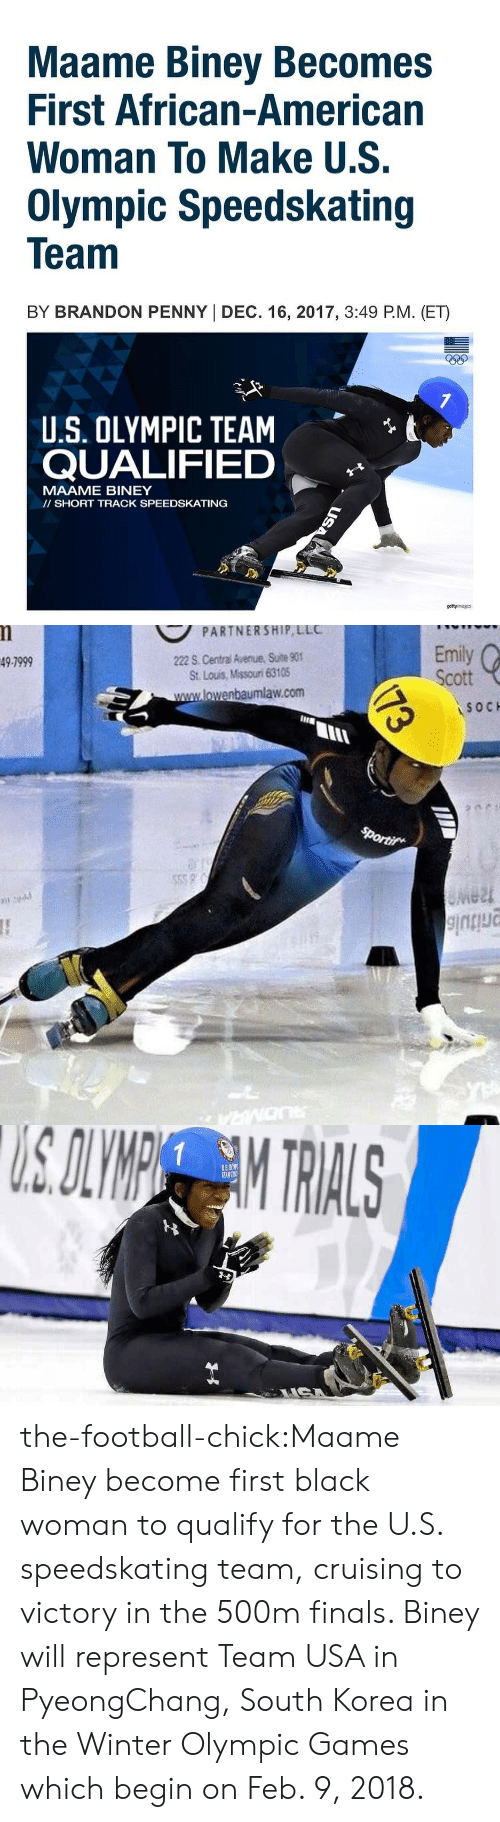 Finals, Football, and Tumblr: Maame Biney Becomes  First African-American  Woman To Make U.S.  Olympic Speedskating  Team  BY BRANDON PENNY I DEC. 16, 2017, 3:49 P.M. (ET)  eep  t  U.S. OLYMPIC TEAM  QUALIFIED  MAAME BINEY  II SHORT TRACK SPEEDSKATING  gettyrmages   PARTNERSHIP LLC  222 S. Central Avenue, Suite 90  St. Lous, Missouri 63105  Emily  Scott  49-7999  lowenbaumlaw.com  SOC  IIIE  lu  e2t the-football-chick:Maame Biney become first black woman to qualify for the U.S. speedskating team, cruising to victory in the 500m finals. Biney will represent Team USA in PyeongChang, South Korea in the Winter Olympic Games which begin on Feb. 9, 2018.